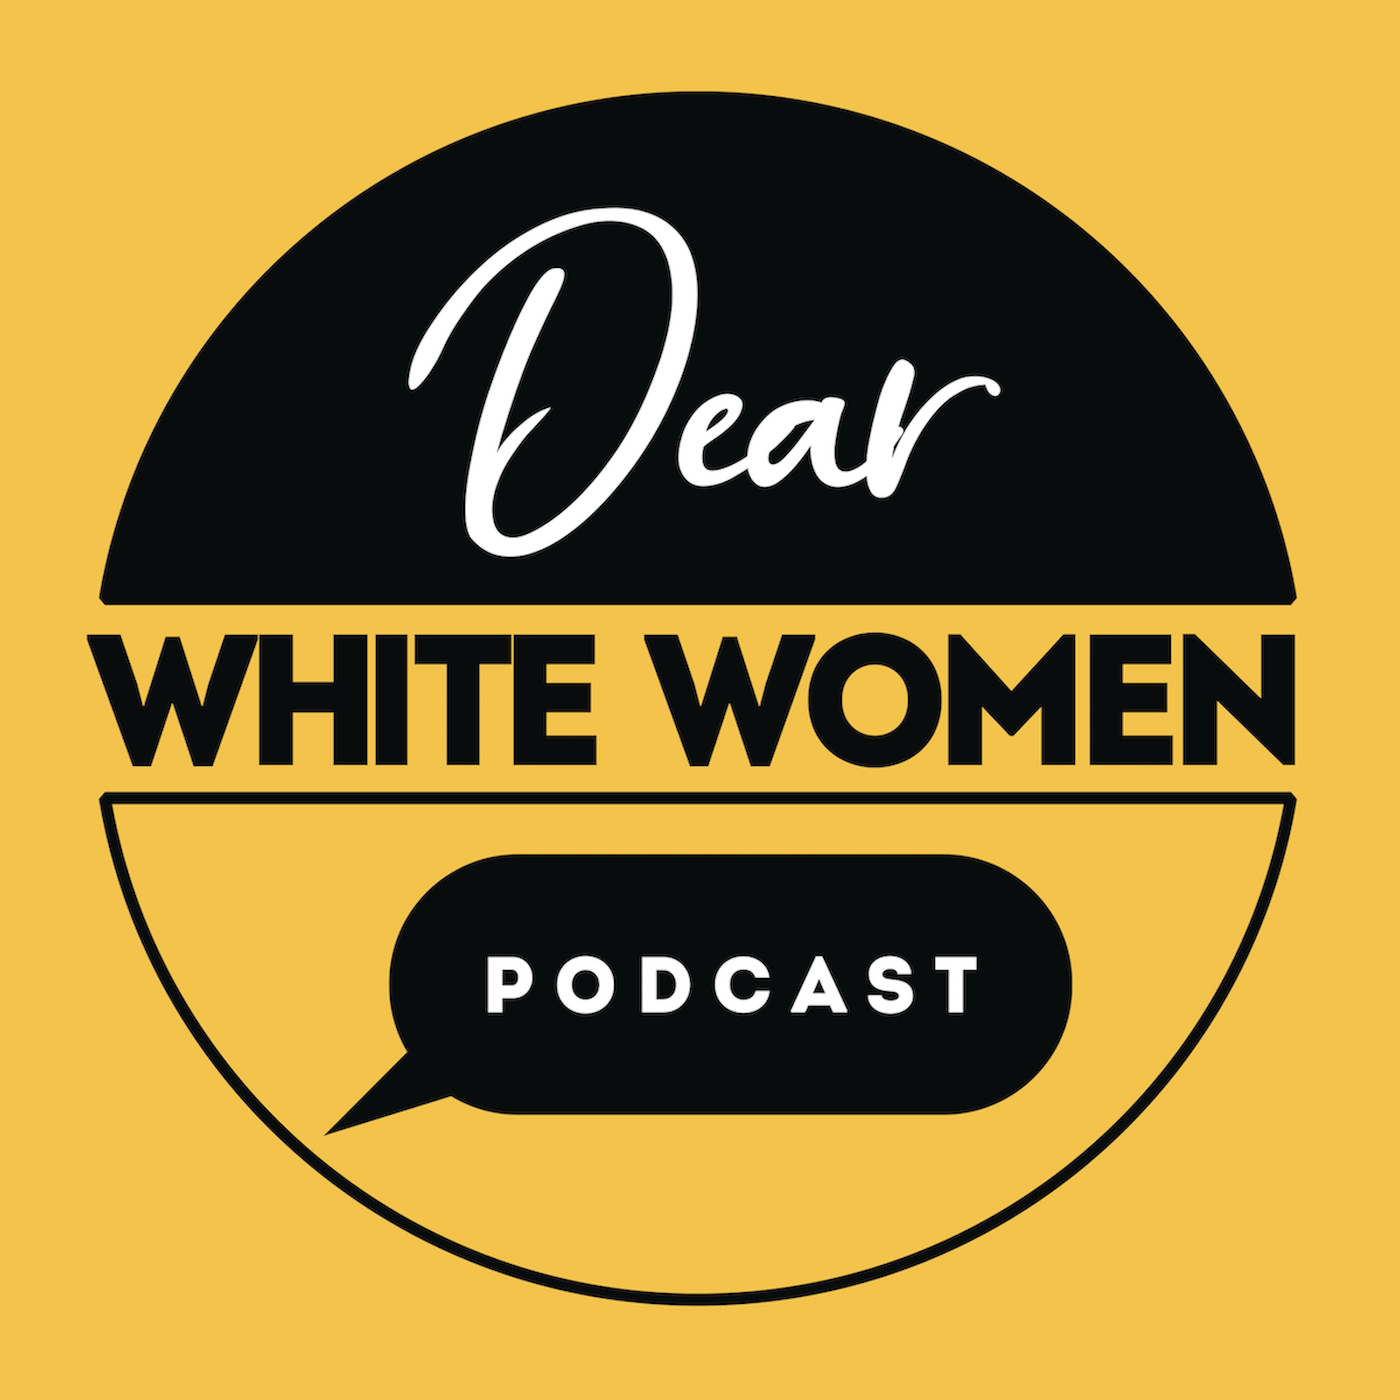 Sara Blanchard, co-host of the Dear White Women Podcast, which is an award-winning weekly podcast dedicated to starting real discussions for (busy) people who wish they knew more about race, identity, and happiness.